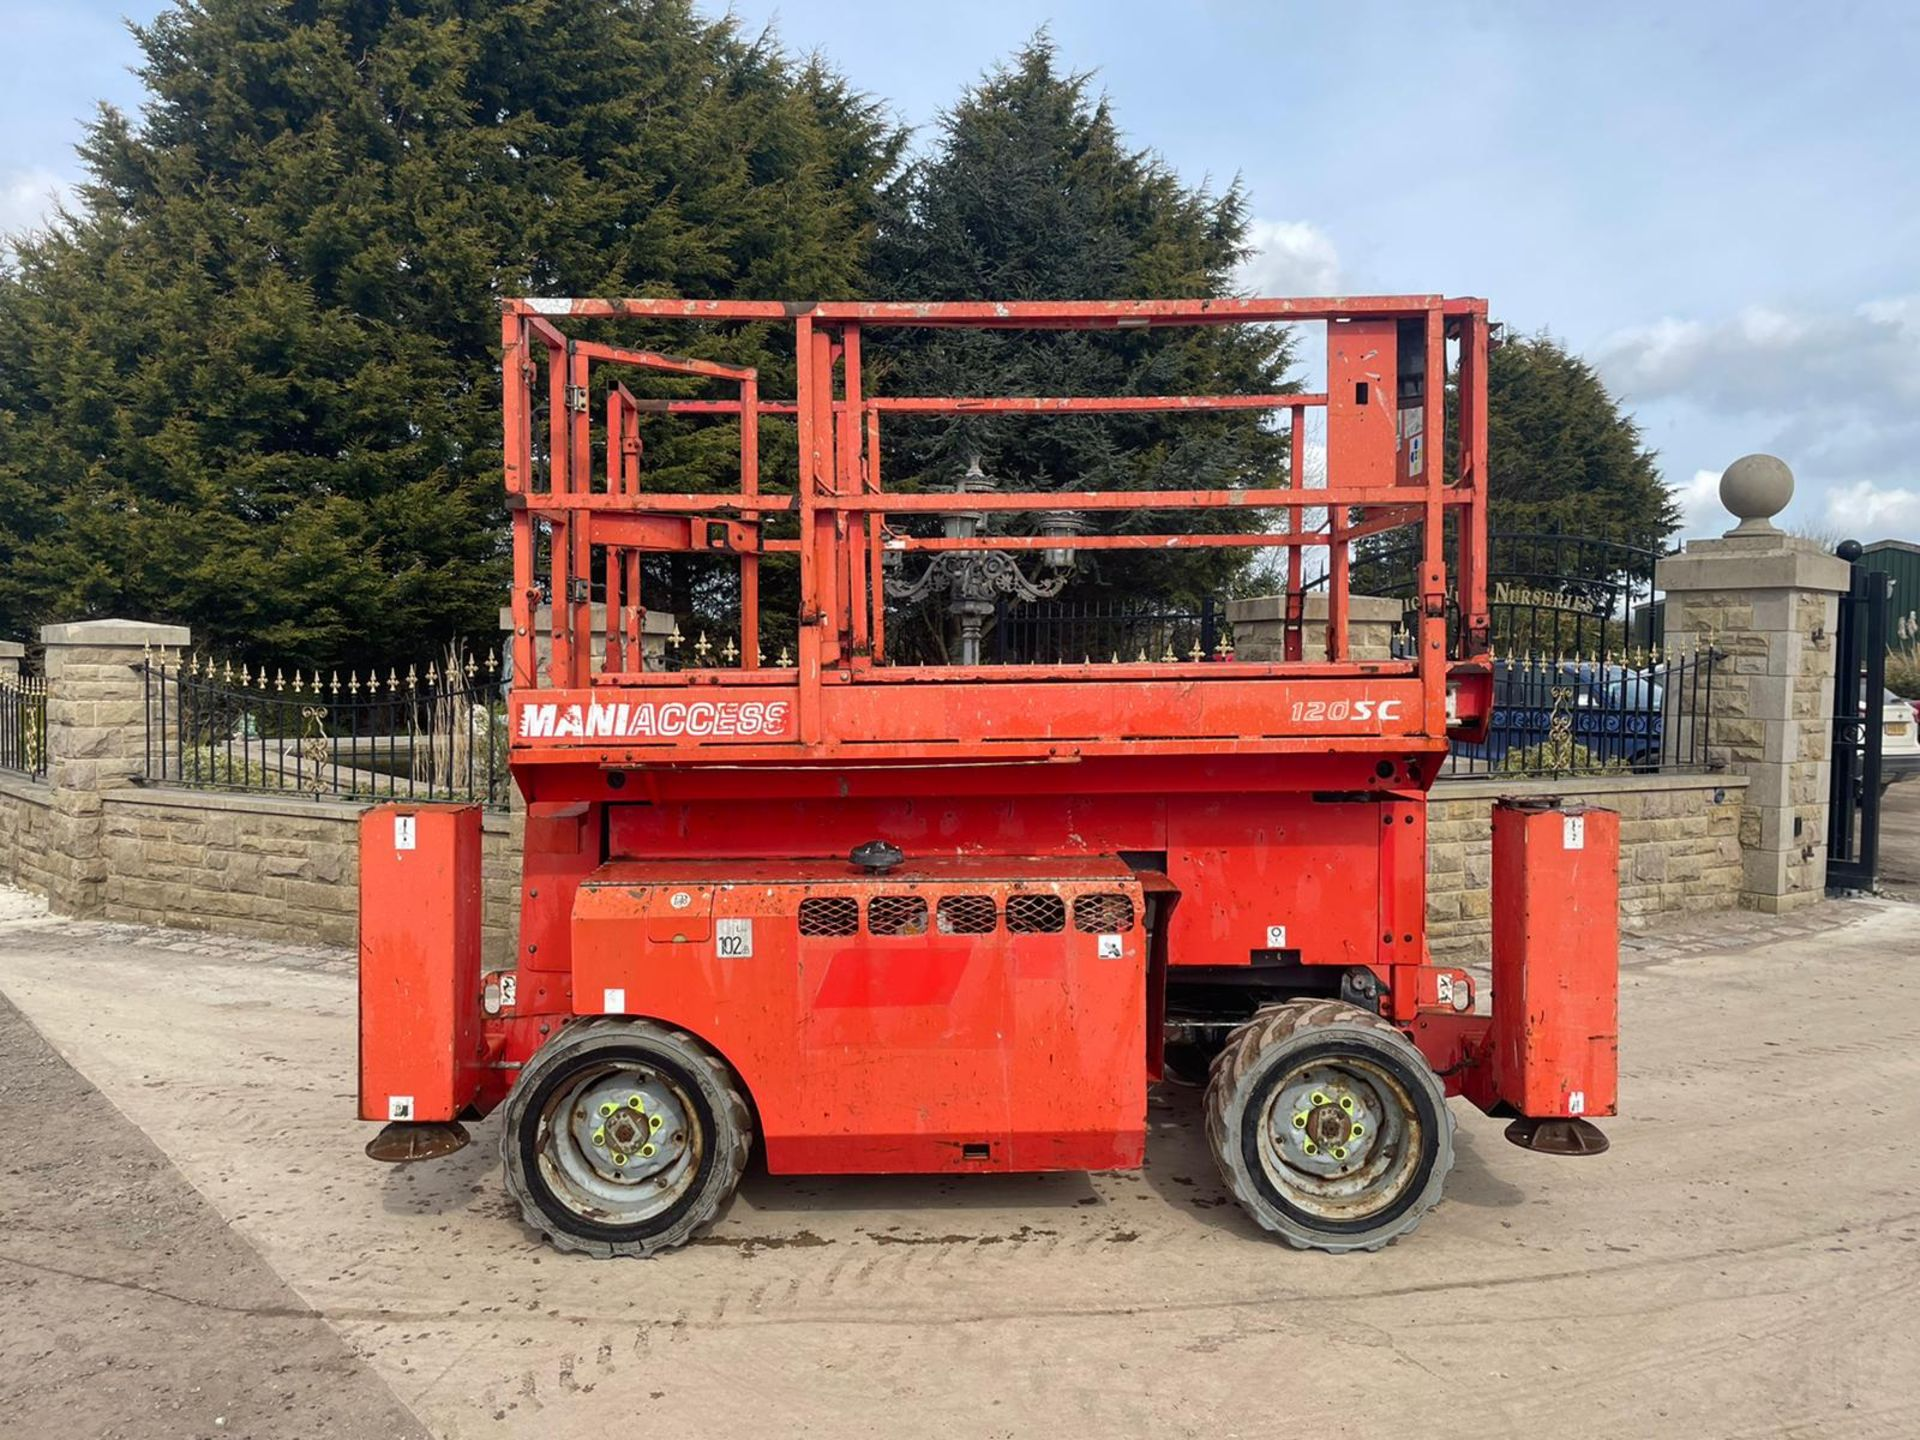 2013 MANITOU MANI-ACCESS 120SC SCISSOR LIFT, RUNS, DRIVES AND LIFTS *PLUS VAT* - Image 2 of 12